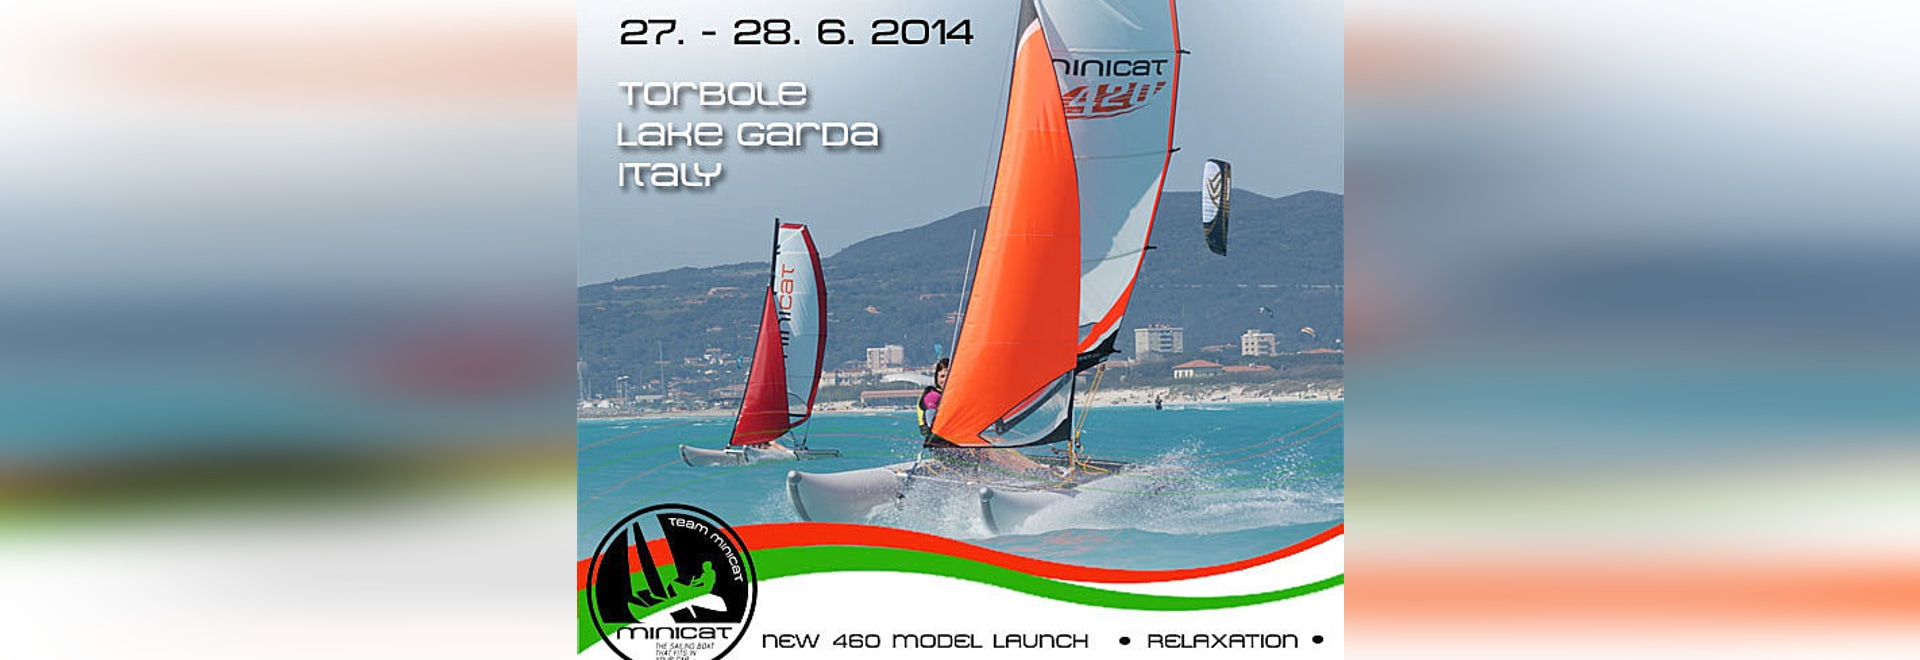 1st International MiniCat Meeting in Italy - REMINDER!!